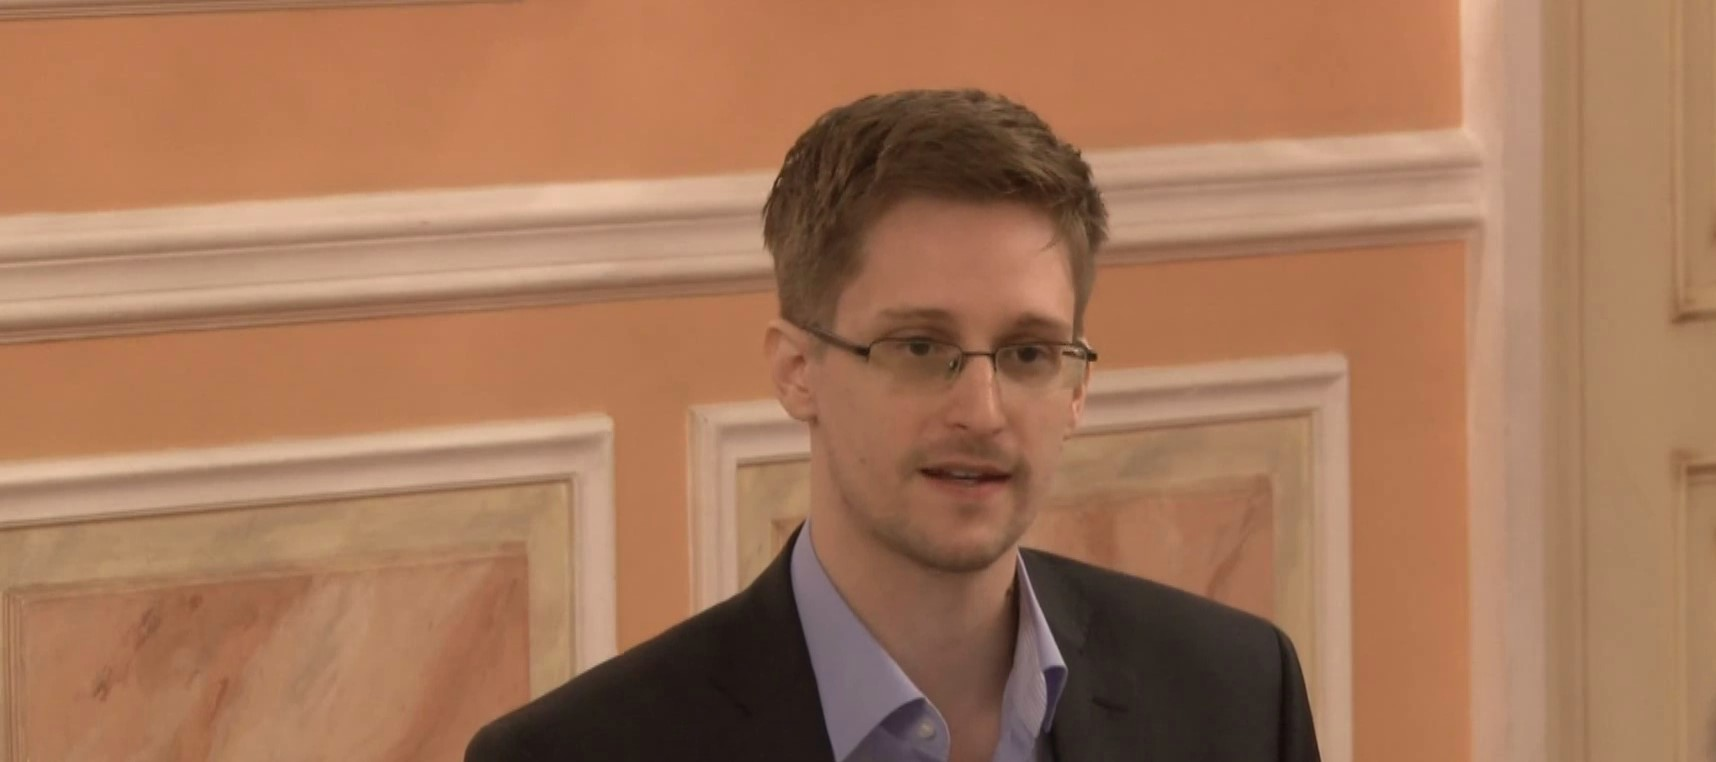 Federal judge rules US government entitled to proceeds from Edward Snowden's memoir and speeches